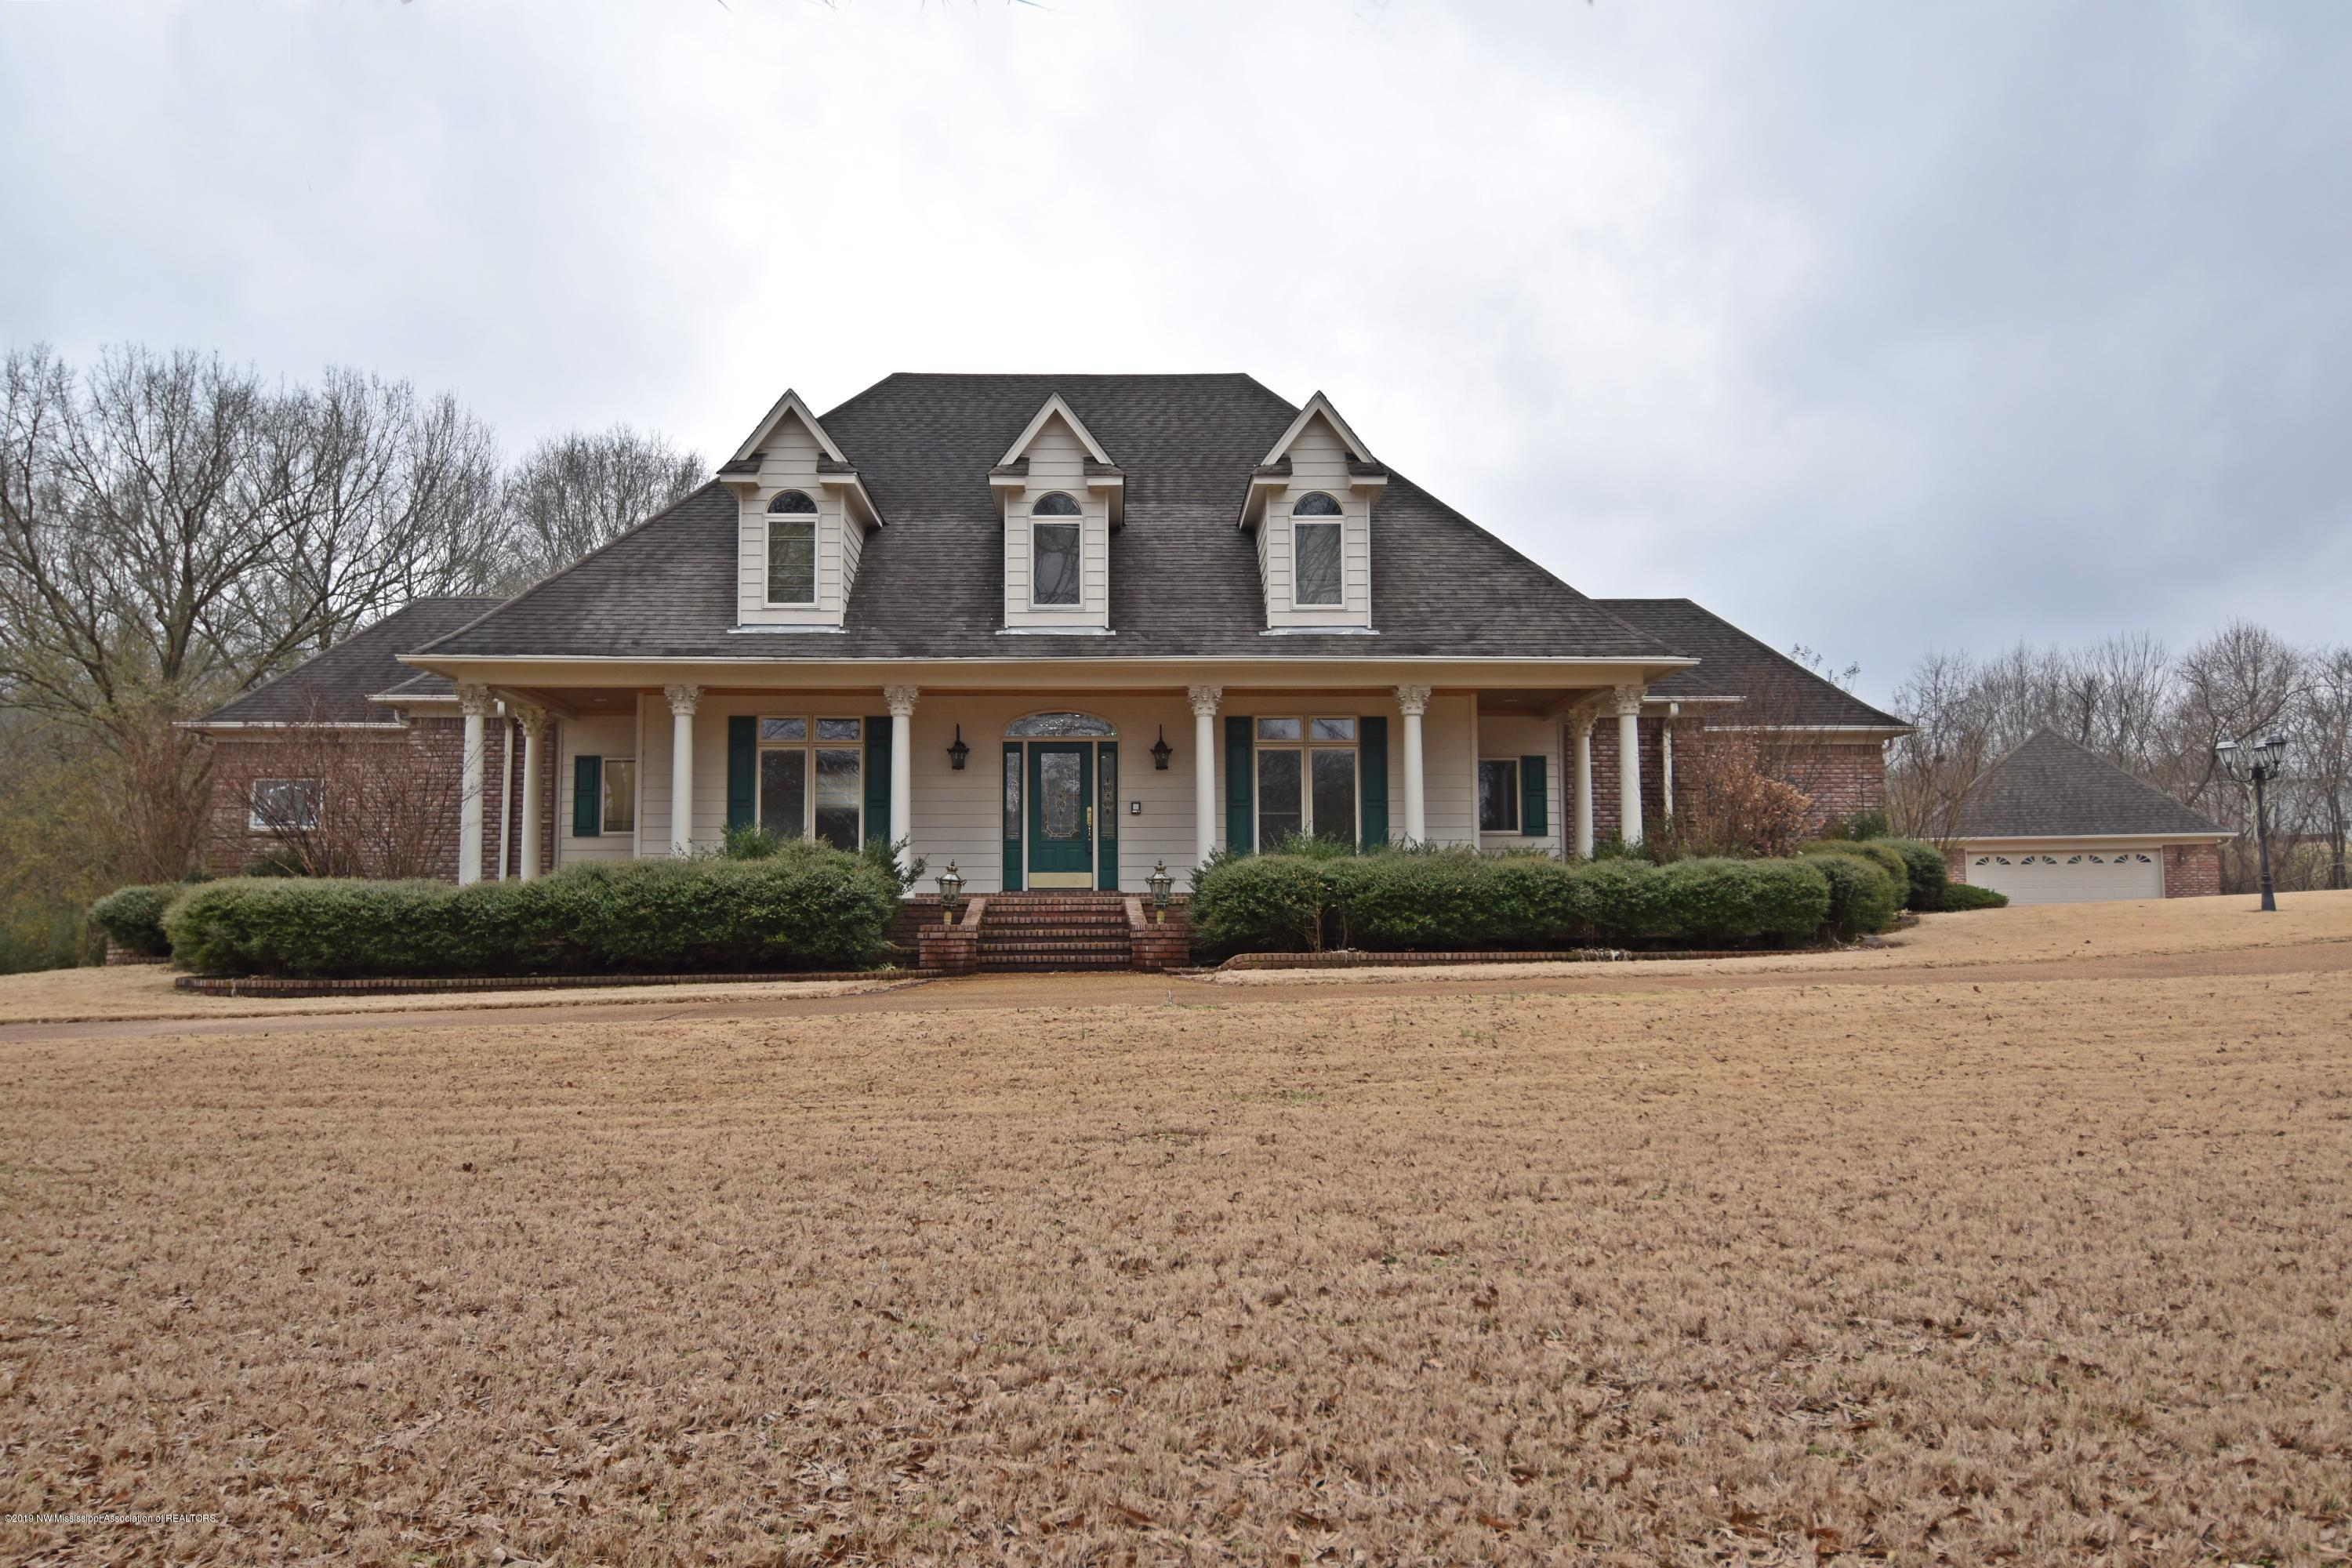 9081 Plantation Oaks Drive, Olive Branch in DeSoto County, MS 38654 Home for Sale